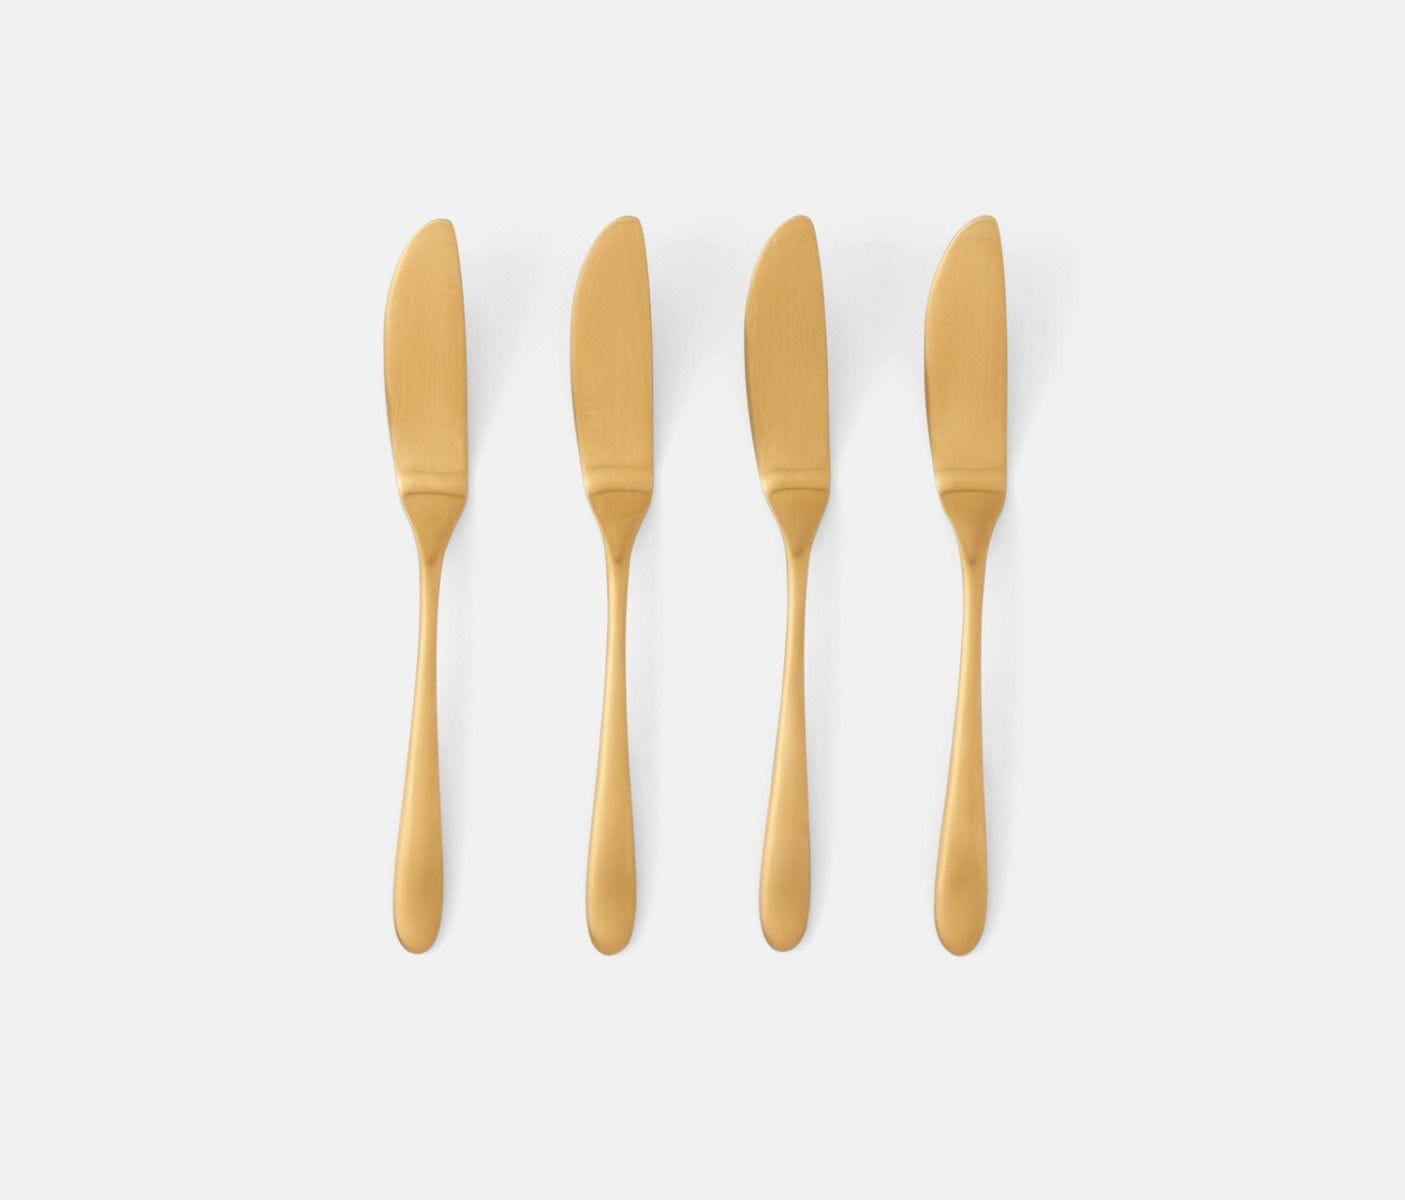 Alba, Gold Cheese Spreaders, Set of 4